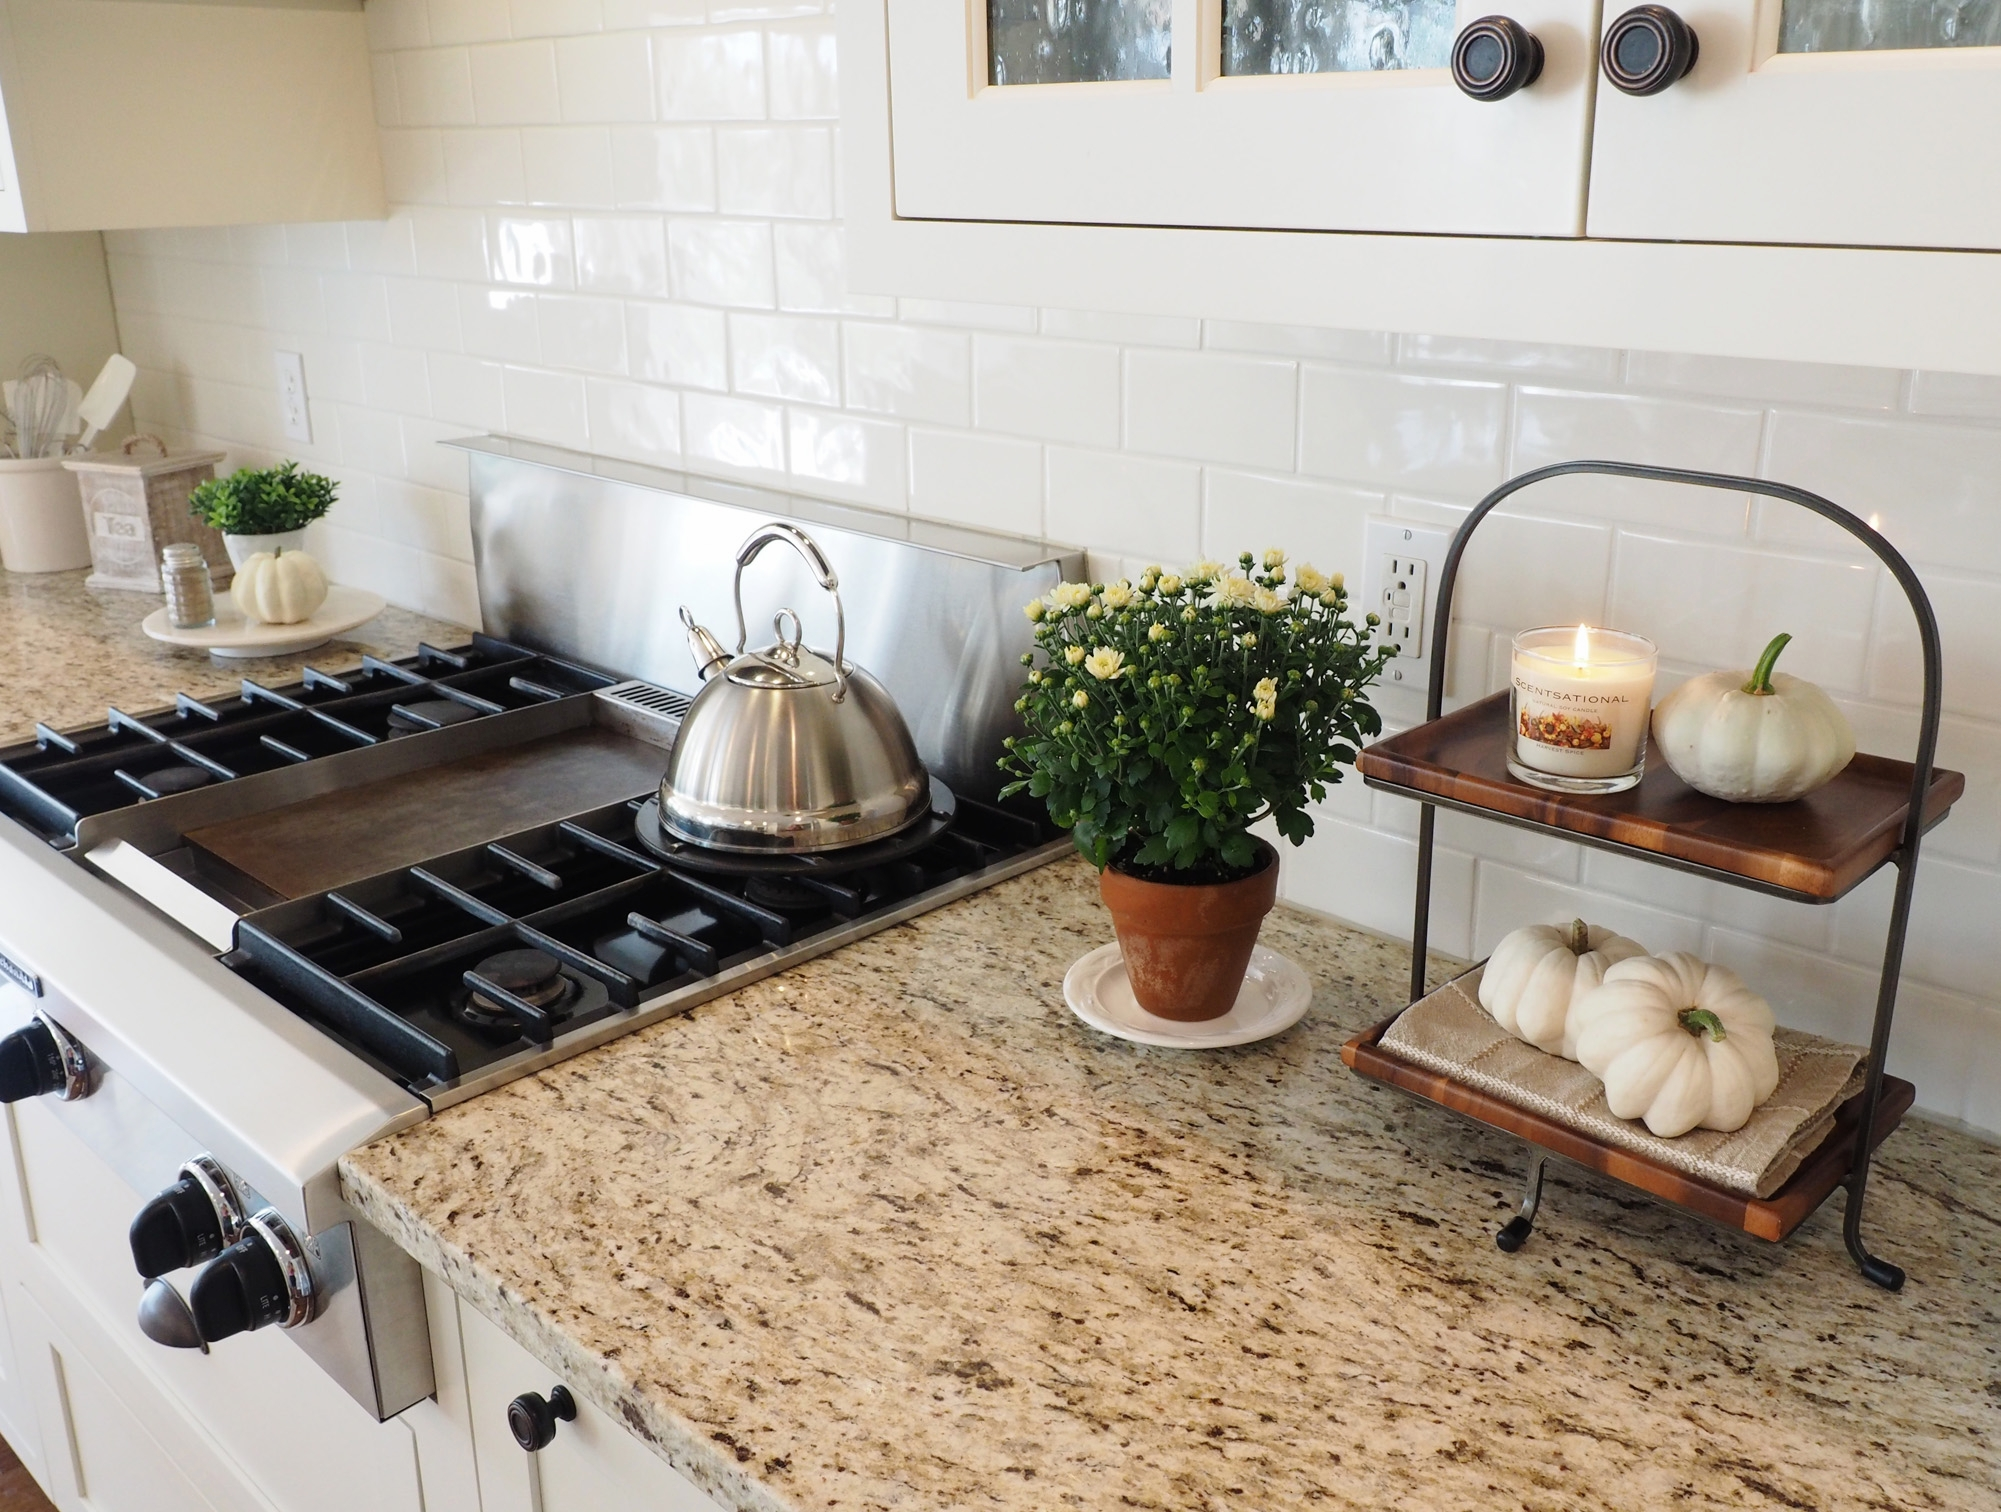 I like to add wood and iron details to my kitchen decor for the fall. It has an earthy feel and goes very well with our granite countertops. The granite is Giallo Ornamental. It's a very neutral granite and looks great with white or off-white cabinetry. It has a creamy background and touches of gray, taupe and dark brown. It truly is one of my favorite granite choices and I believe readily available and within an affordable price range. Our gas cooktop is made by Kitchen-Aid featuring the center griddle. I have fried hamburgers, made pancakes and grilled cheese sandwiches on our griddle with ease however,since our children are gown now,my use for it has declined. Today I would opt for the 6 burners. But hey, you never know what life will bring your way when making these choices.